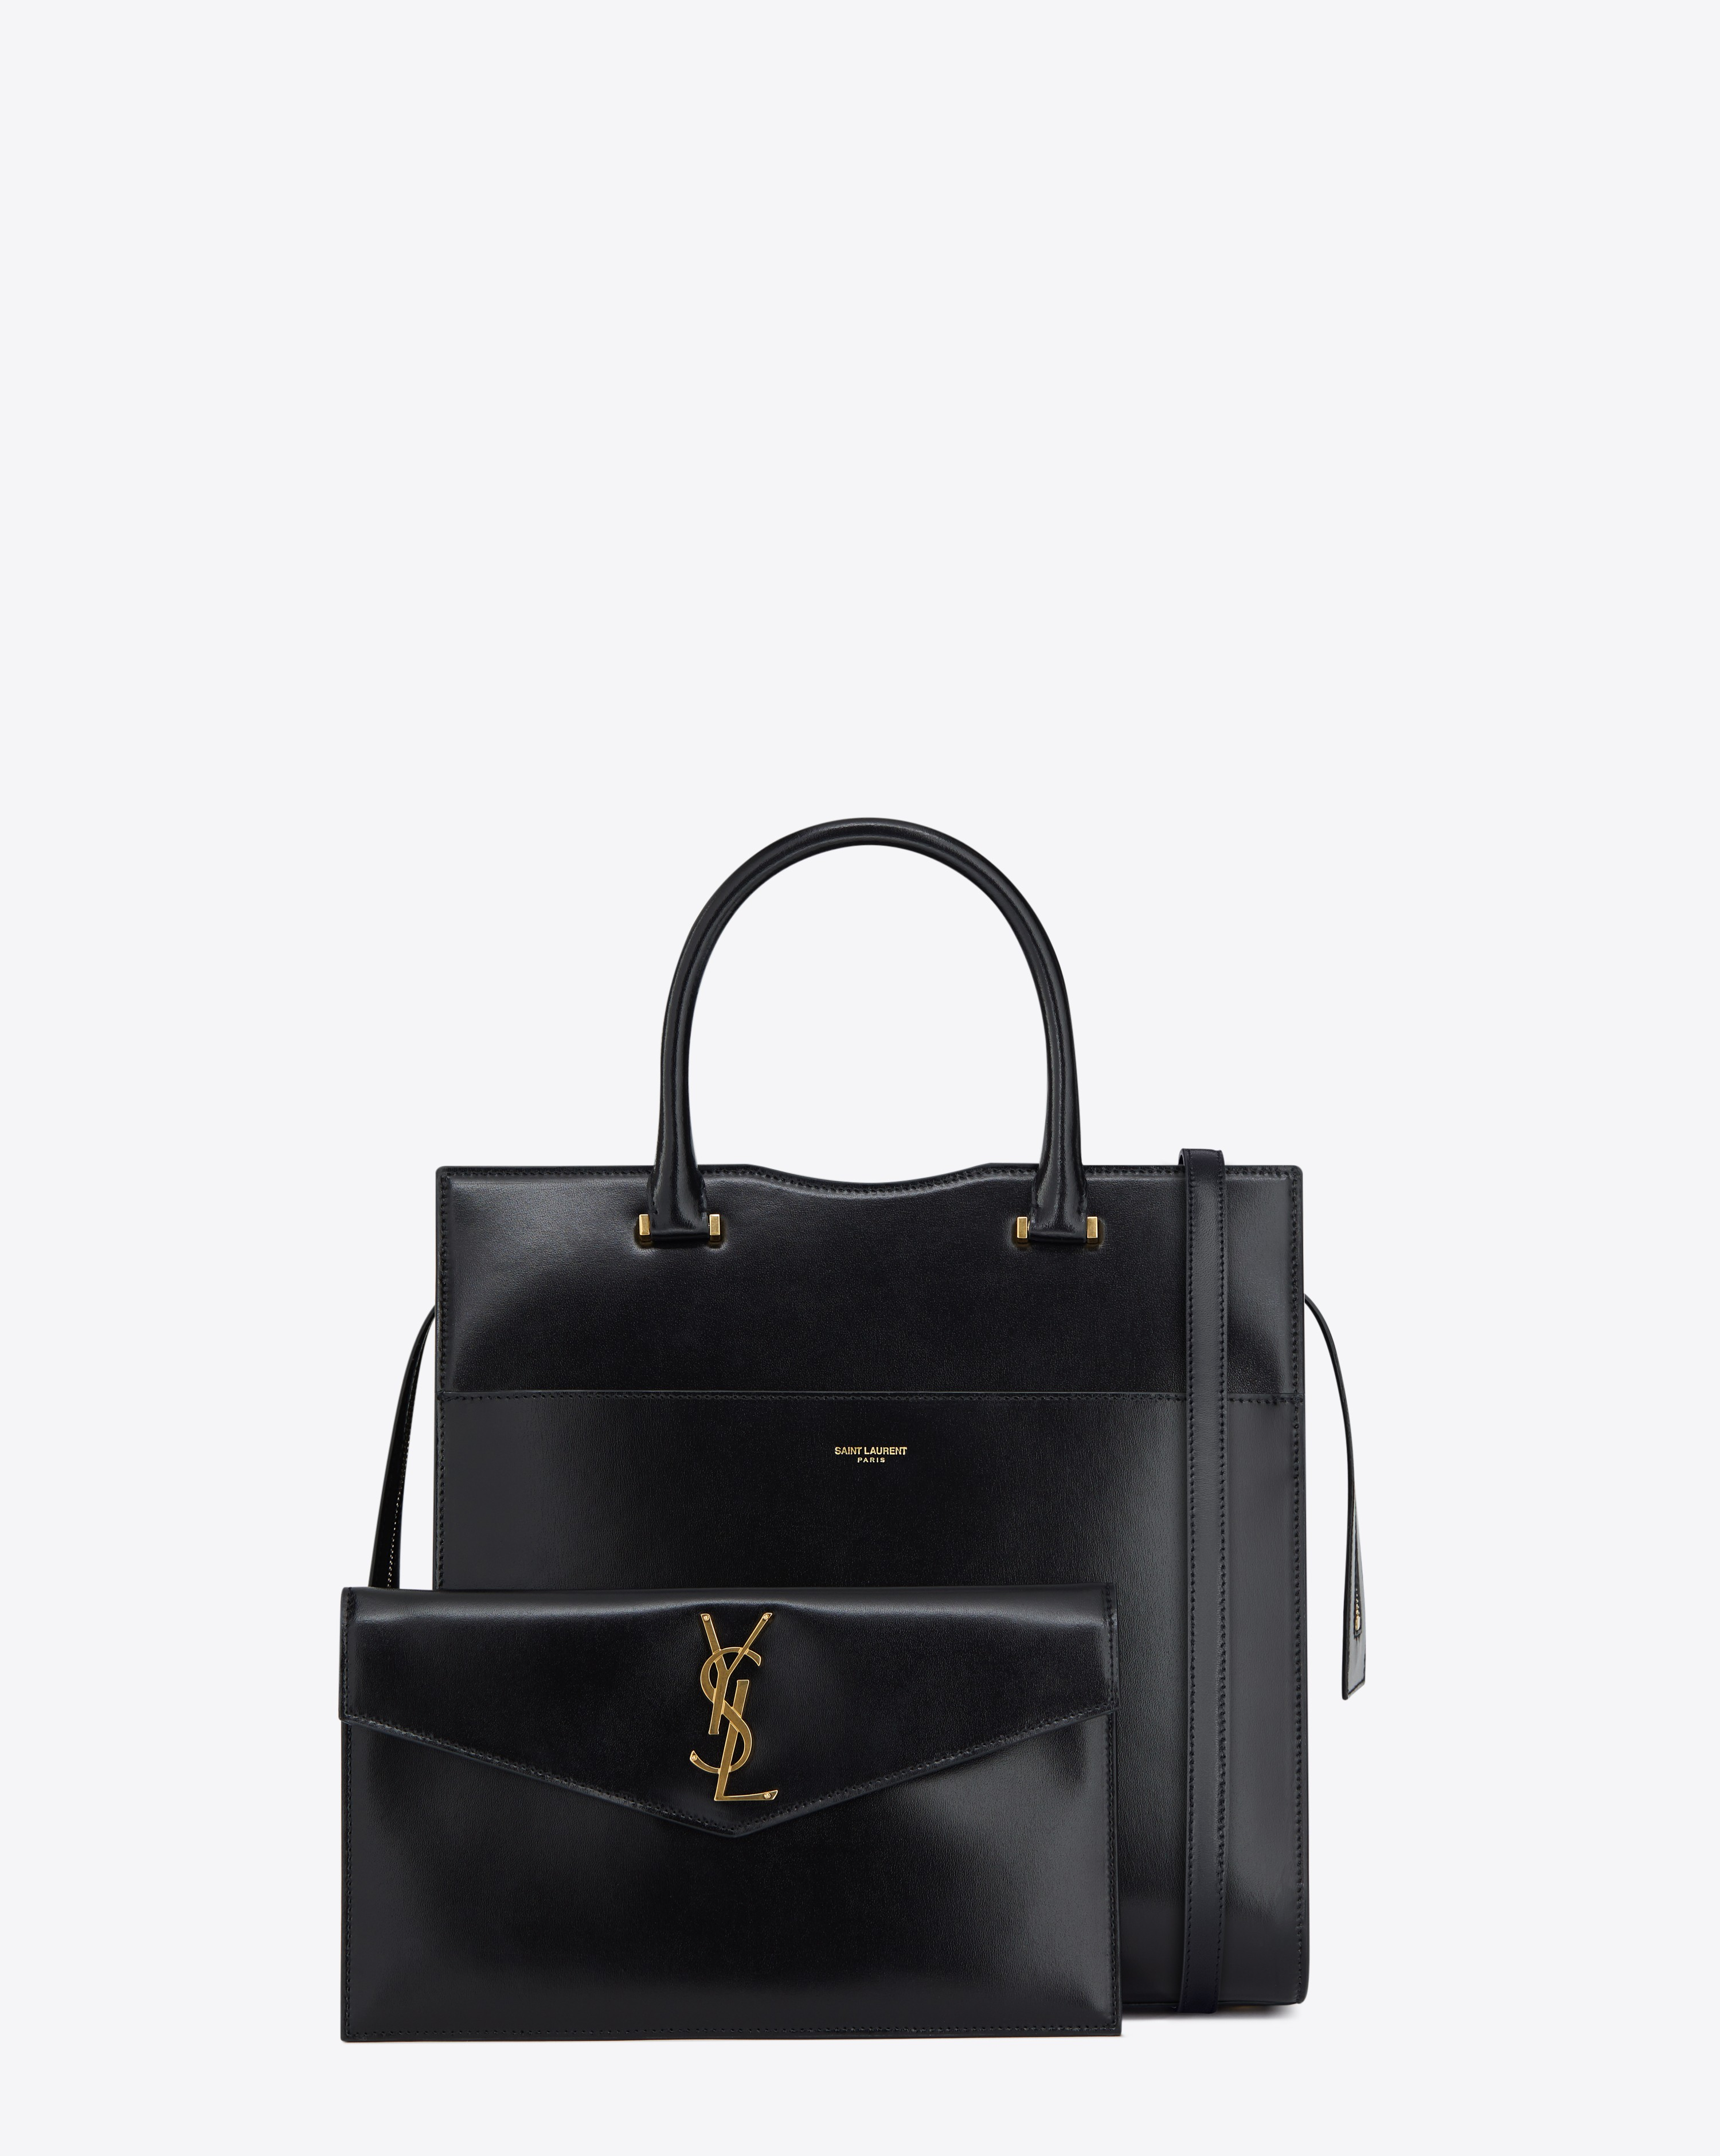 af7cf1e67079 STYLE Edit: Saint Laurent's new bags channel uptown elegance | South China  Morning Post